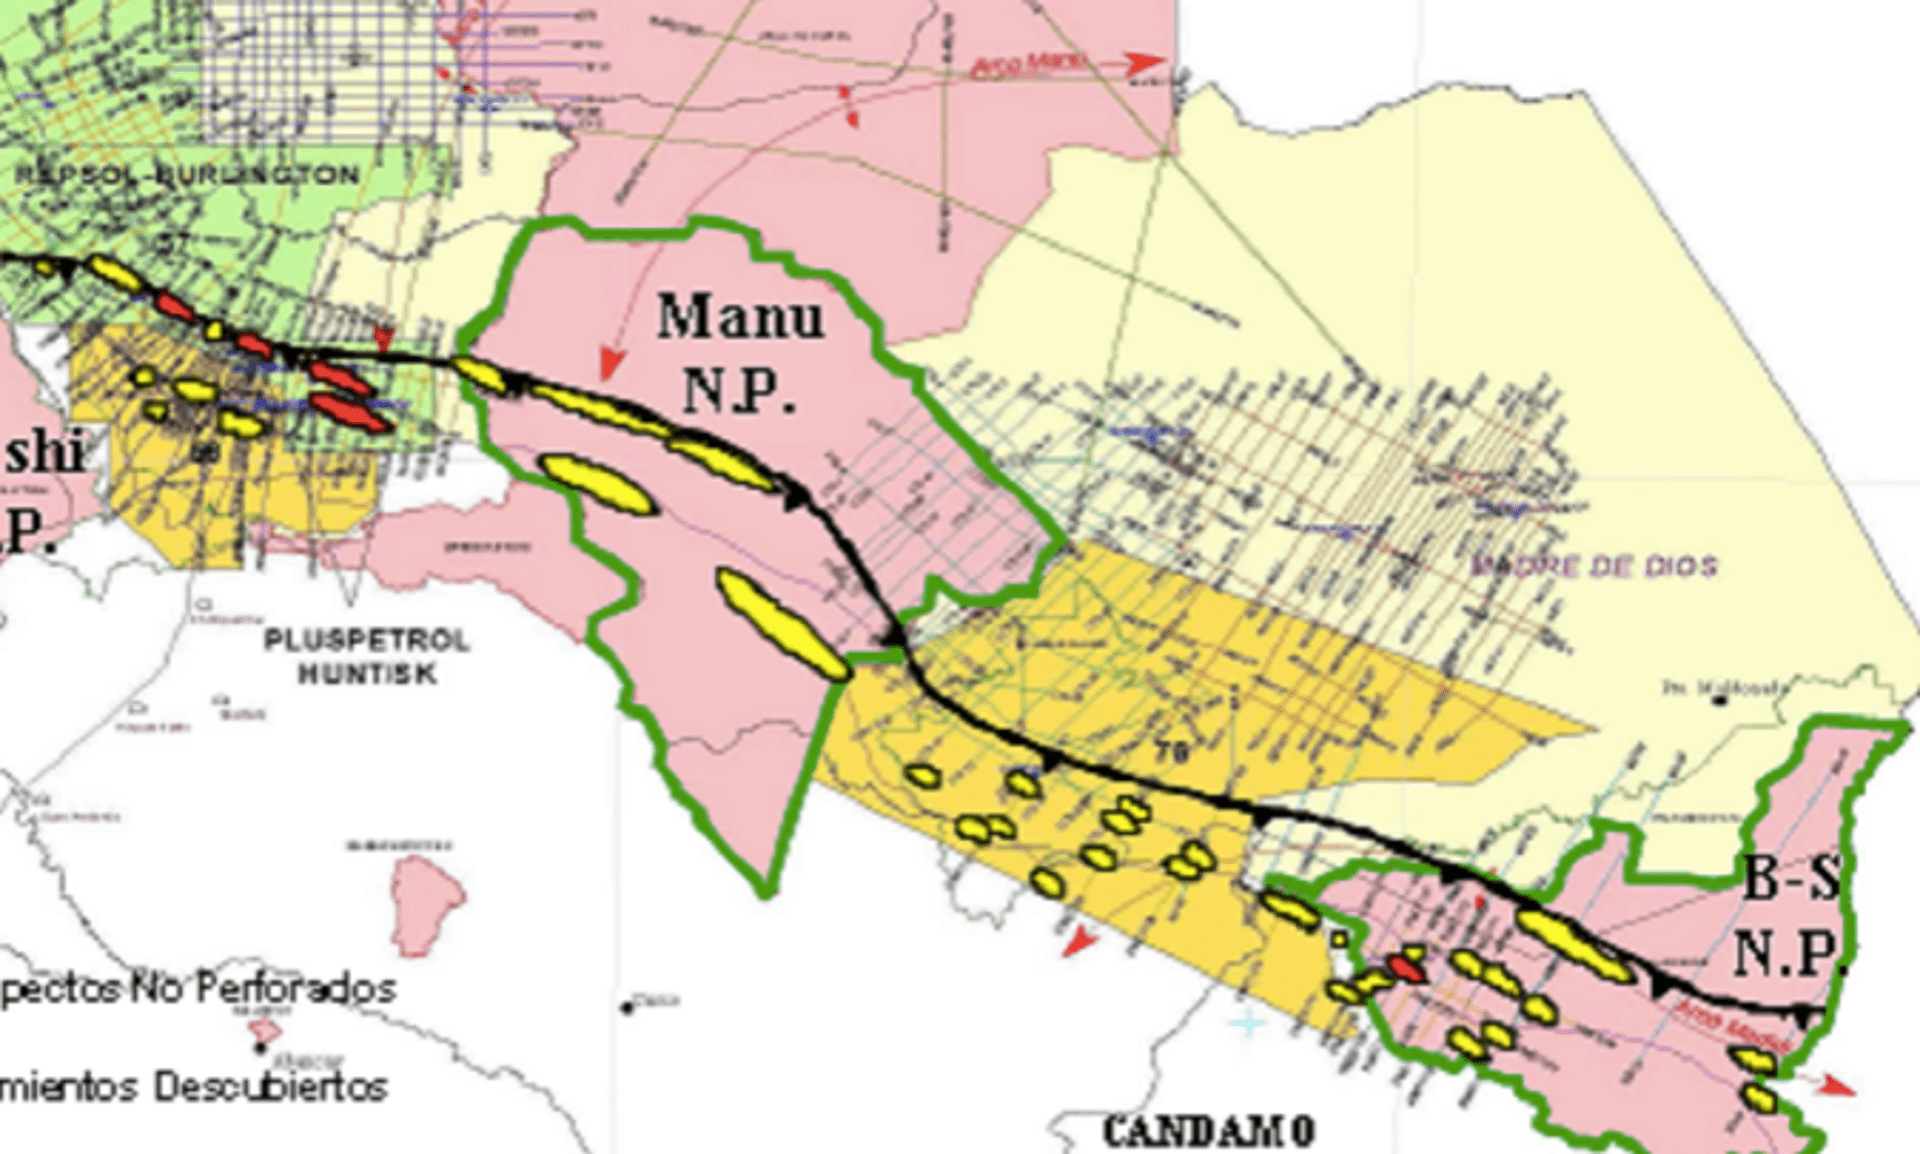 Map demonstrating the reasons for the oil and gas industry's interest in Manu. The yellow blobs are 'undrilled prospects', while the red blobs are 'discovered deposits.' Photograph: Screen shot from a Perupetro presentation